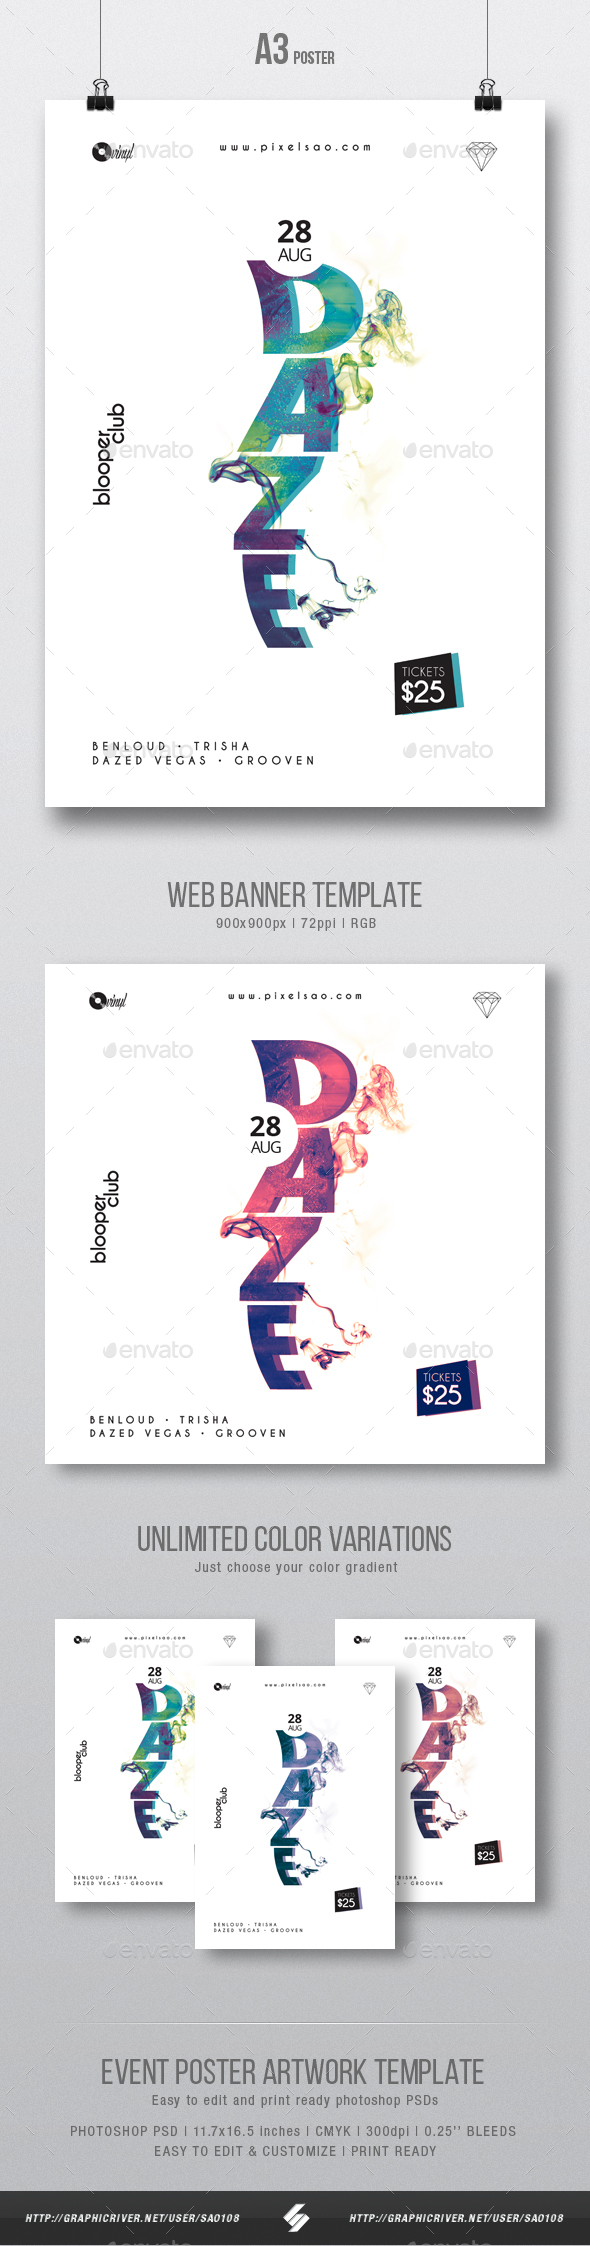 Daze - Minimal Party Flyer / Poster Artwork Template A3 - Clubs & Parties Events